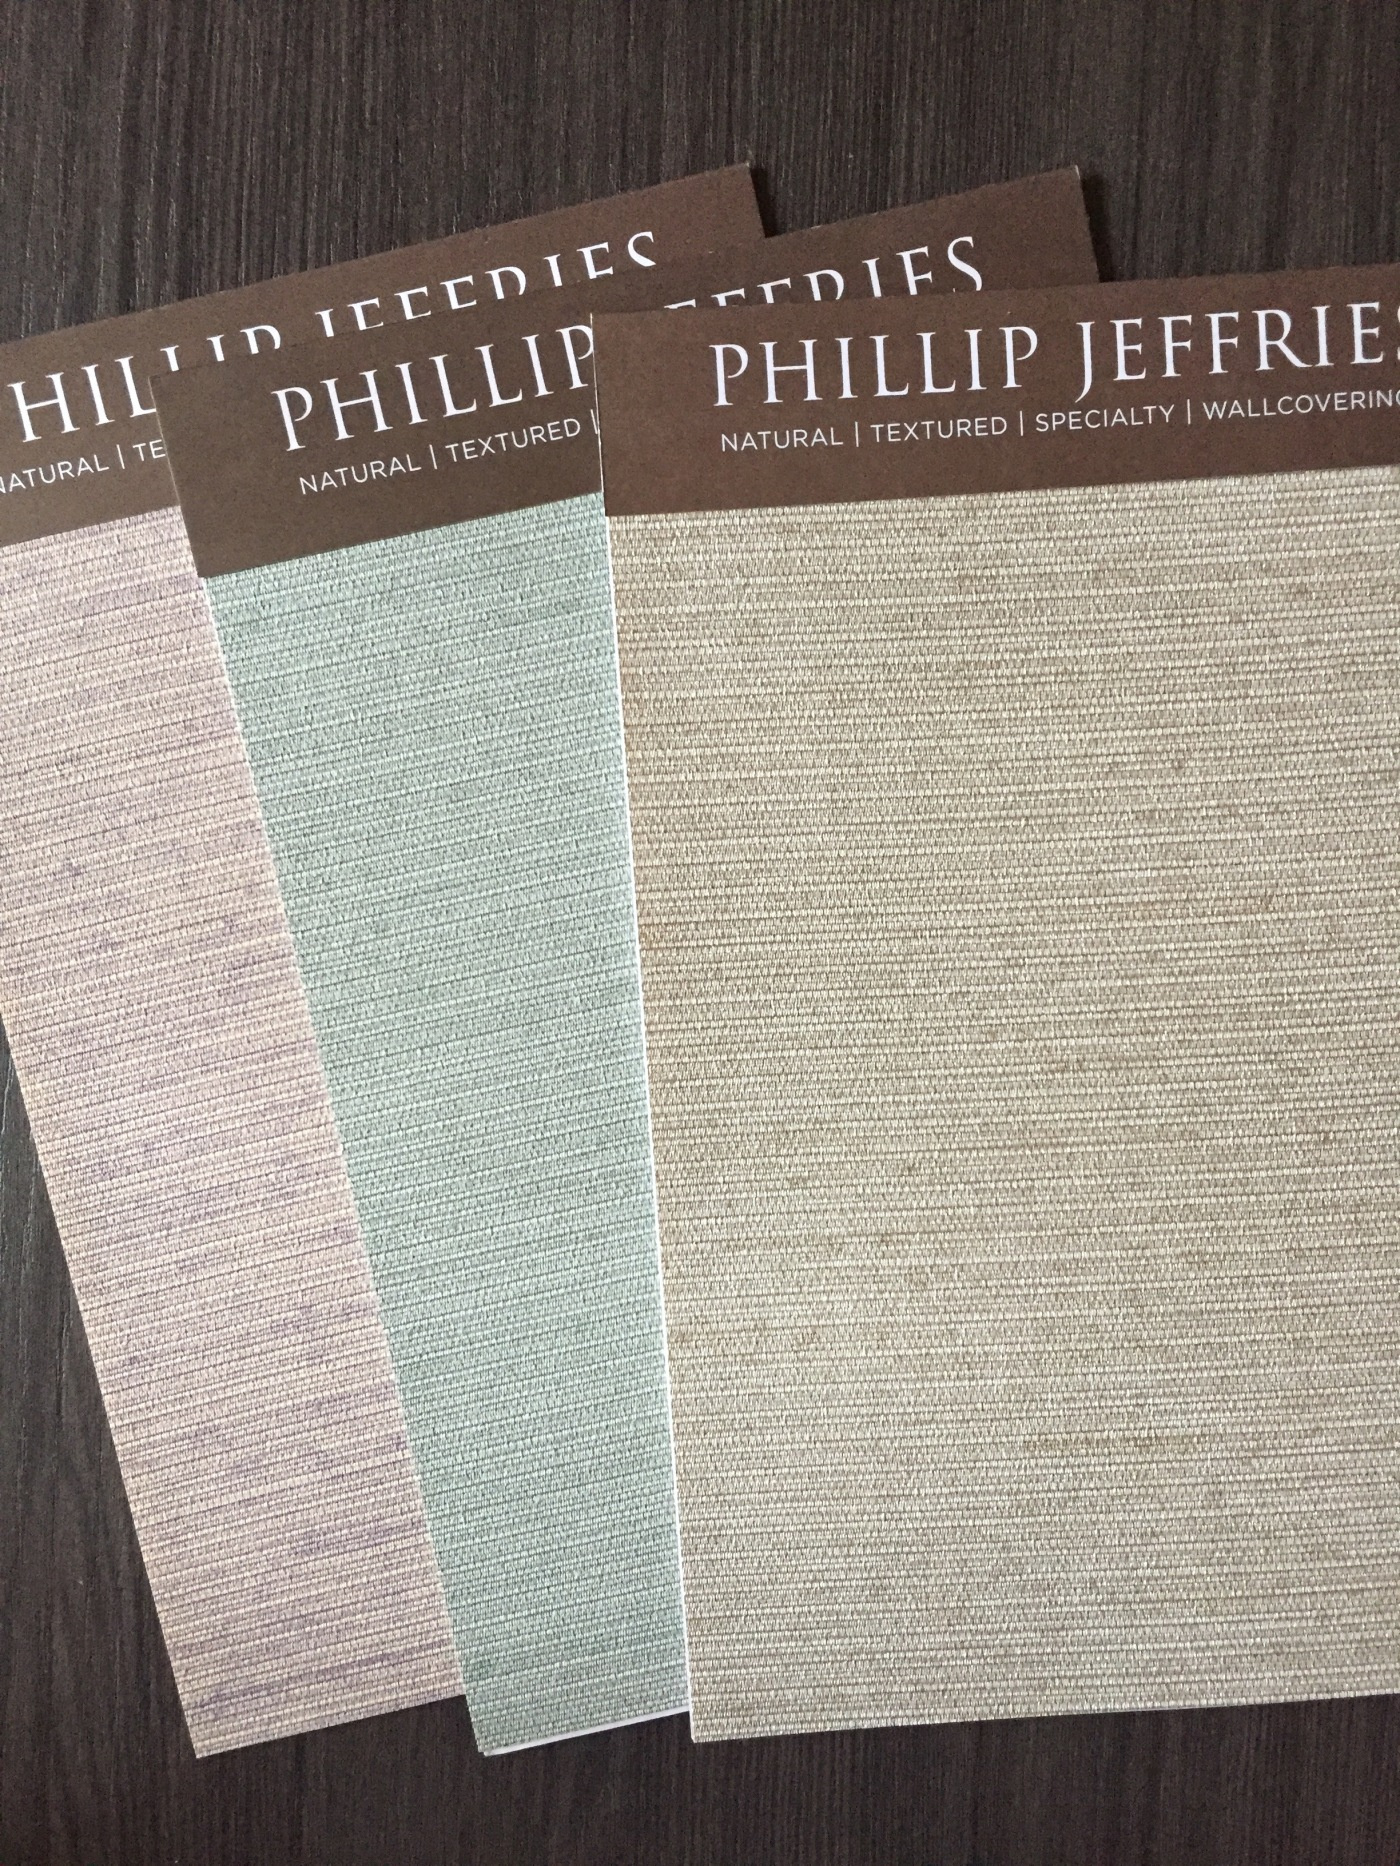 Friday Family-Friendly Find: Phillip Jeffries Vinyl Tailored Linens | Interiors for Families